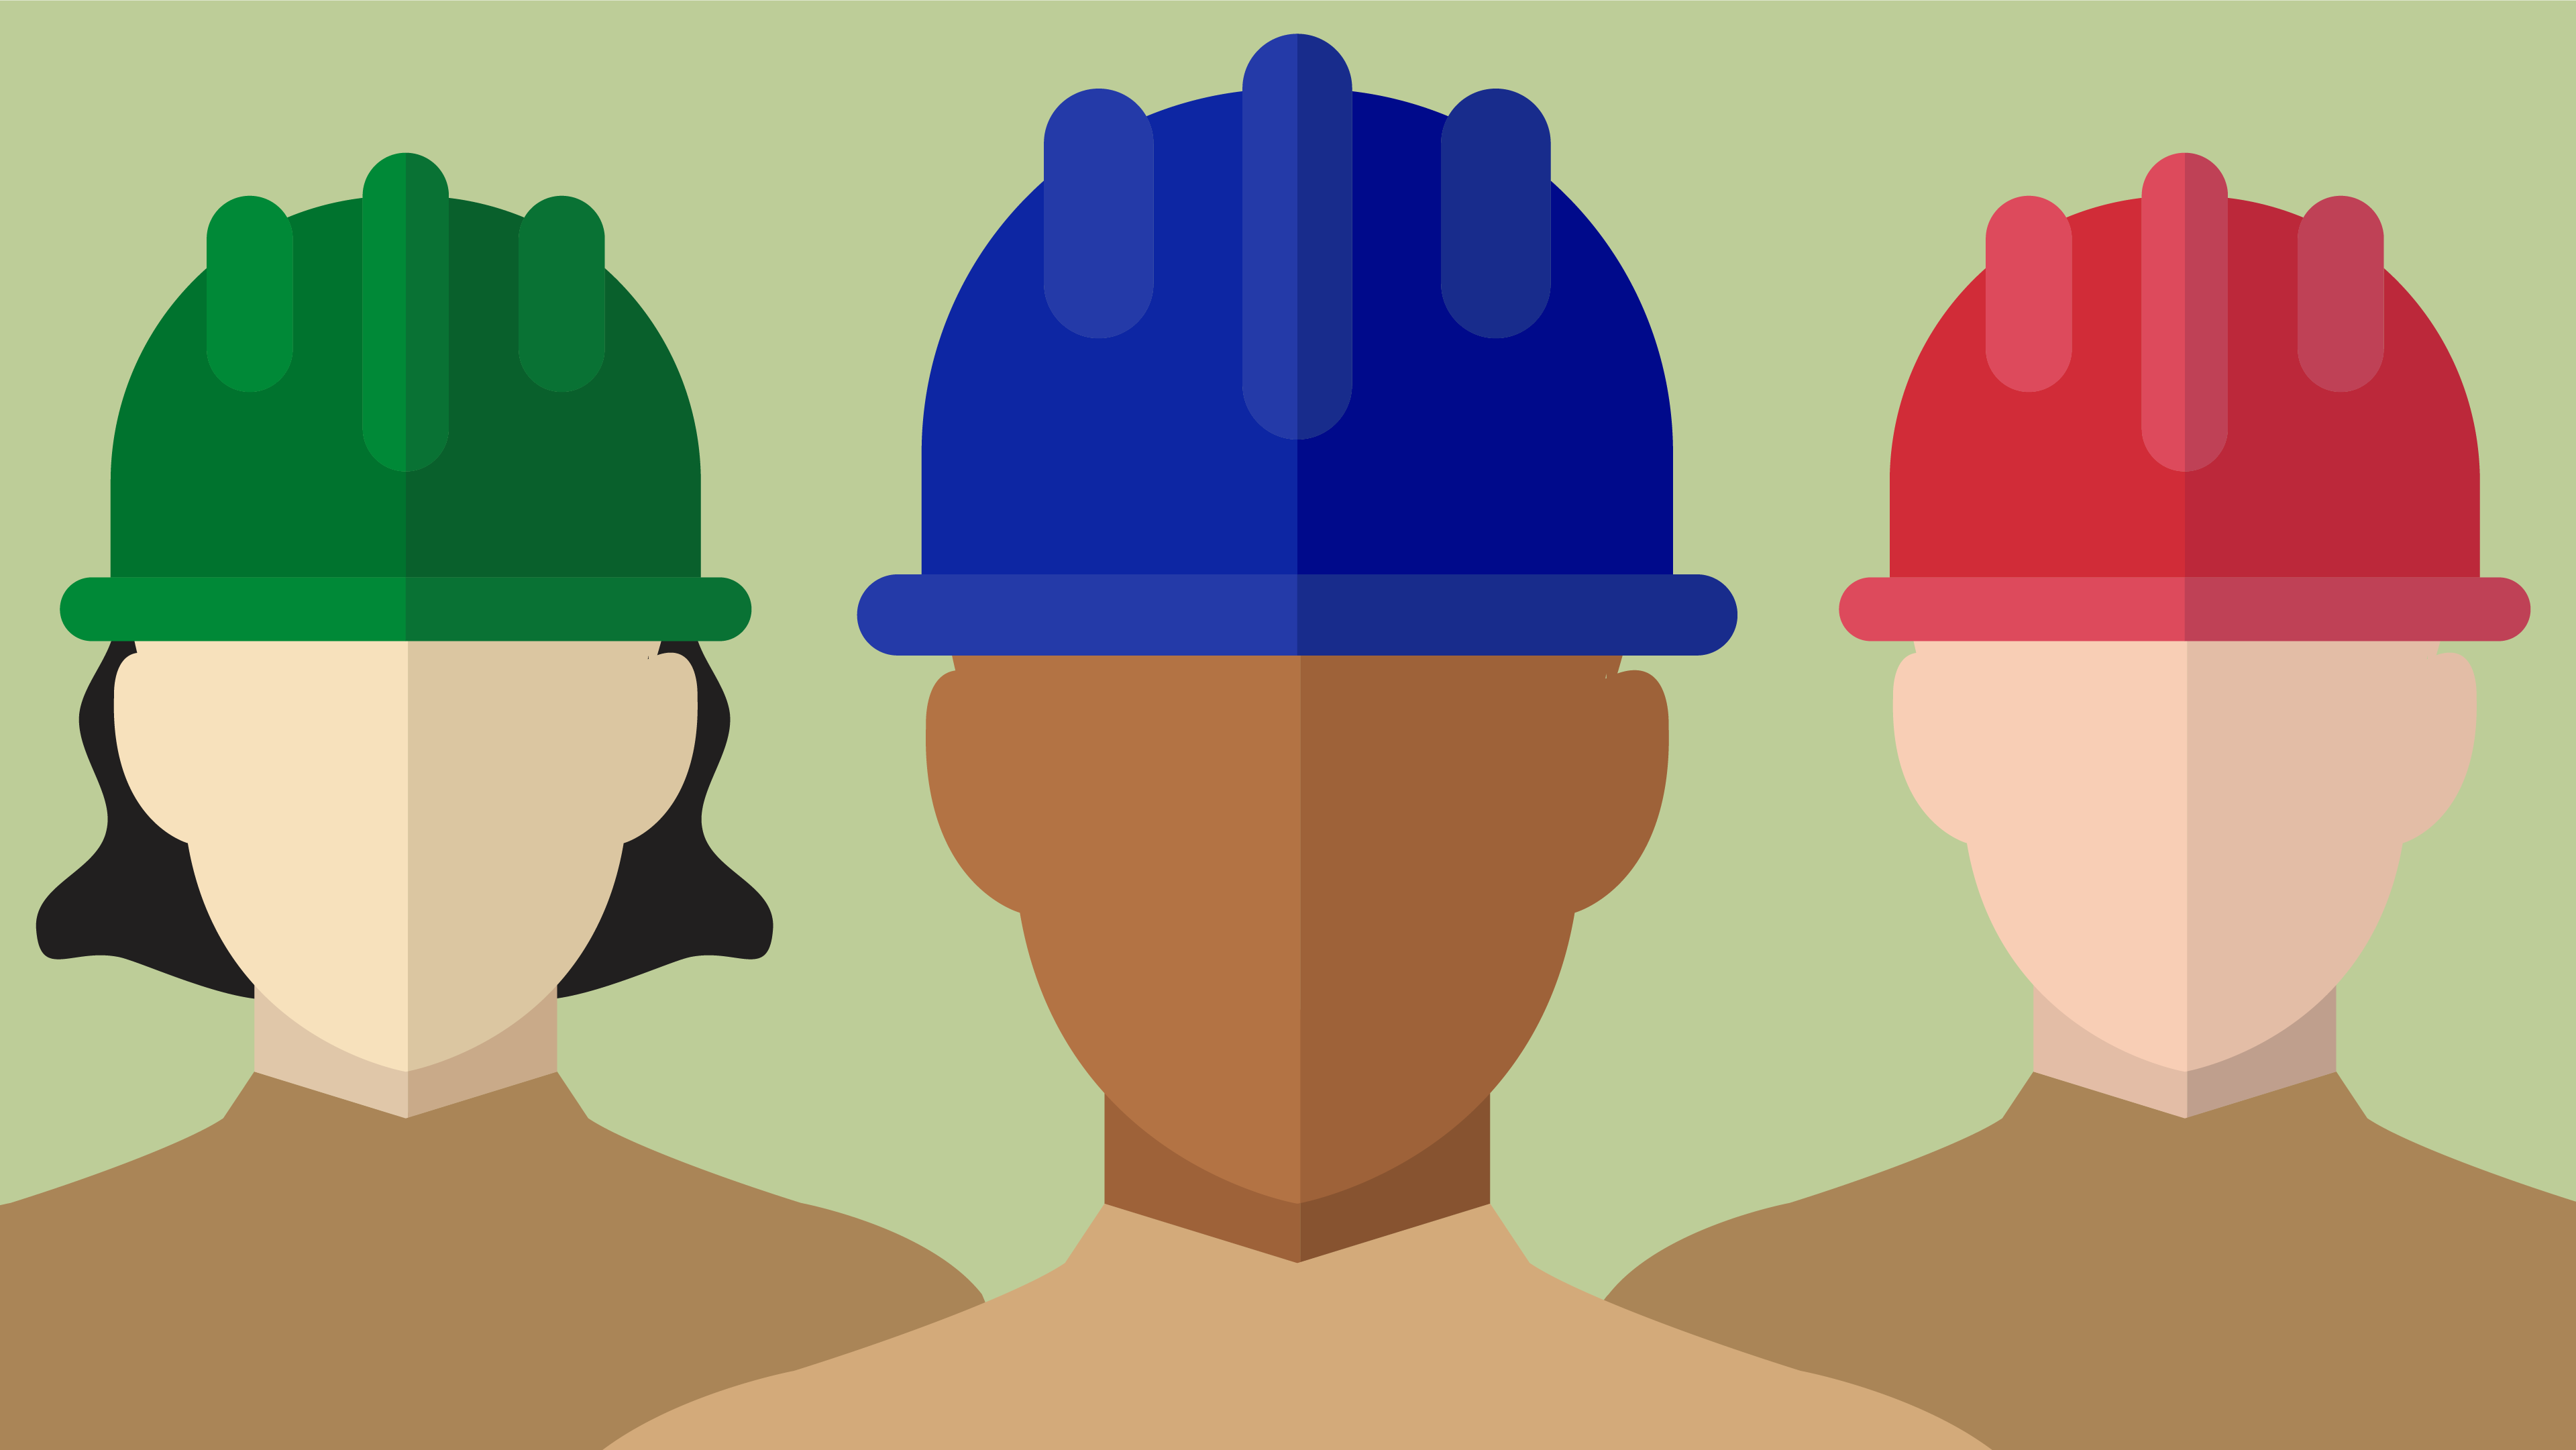 Hire a Crew illustration. Depicts generic Corpsmembers in blue, green and red helmets.